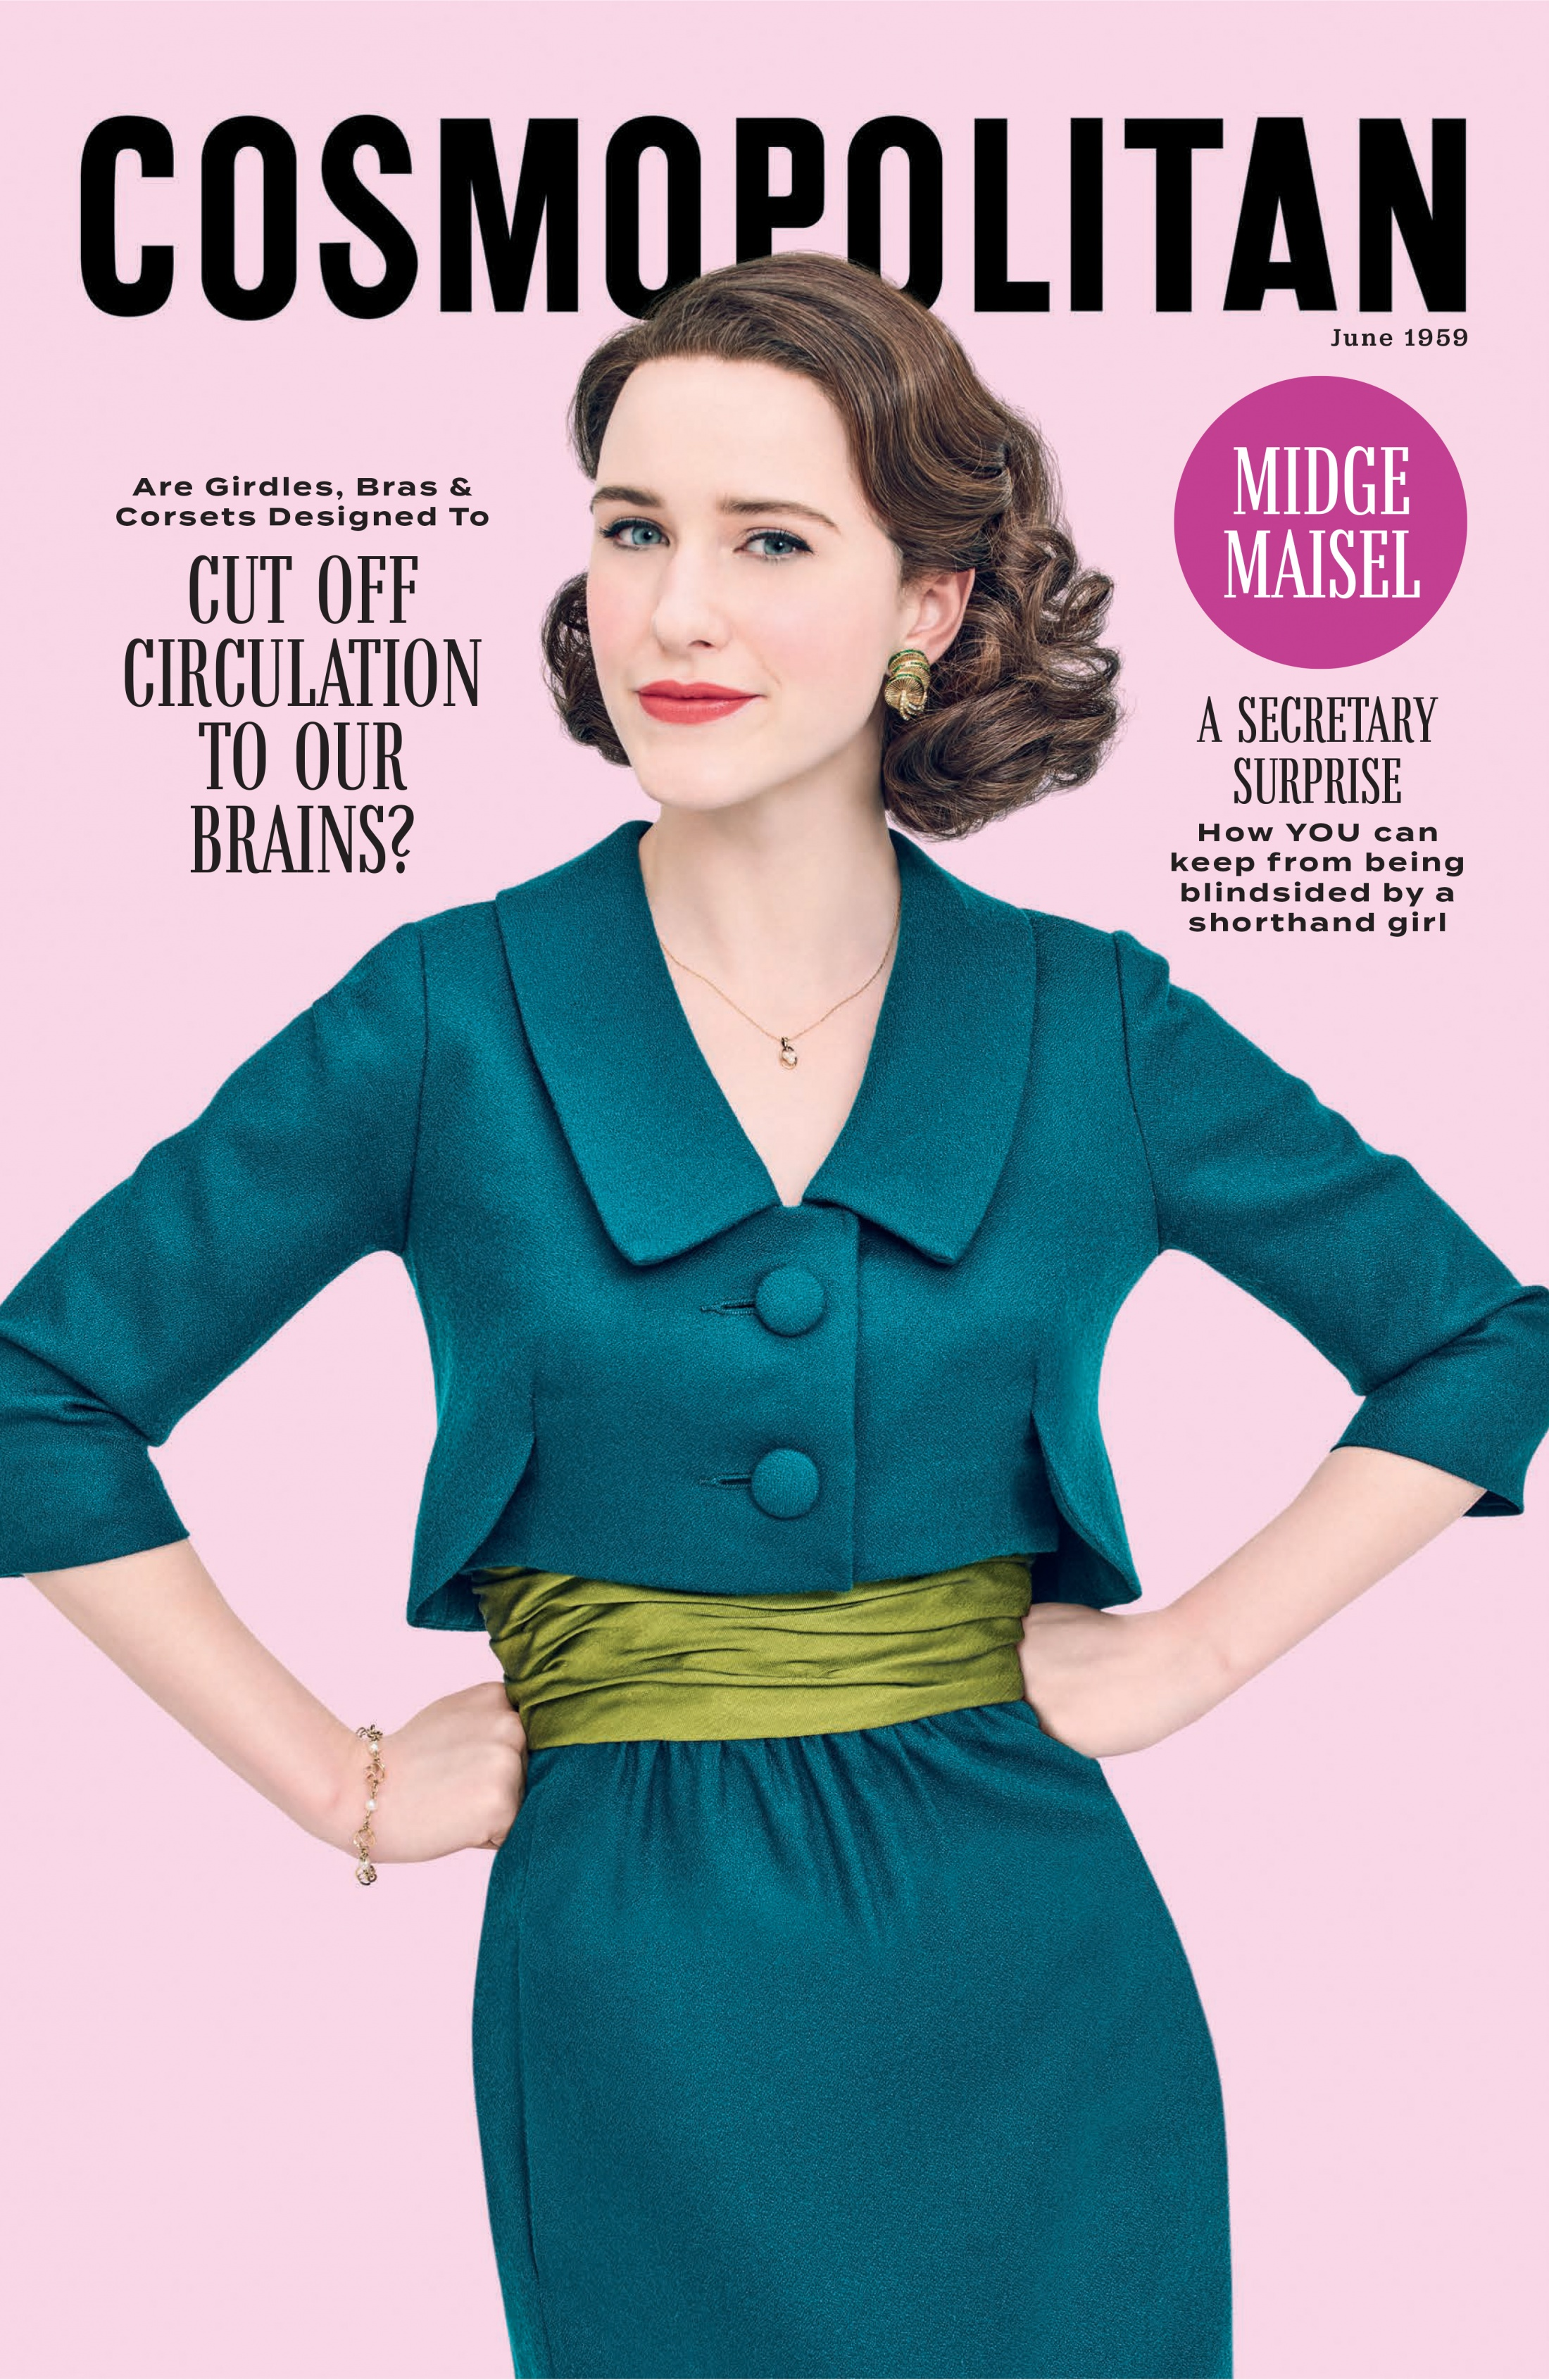 Thumbnail for The Marvelous Mrs. Maisel Magazine Cover Takeover (Cosmo)